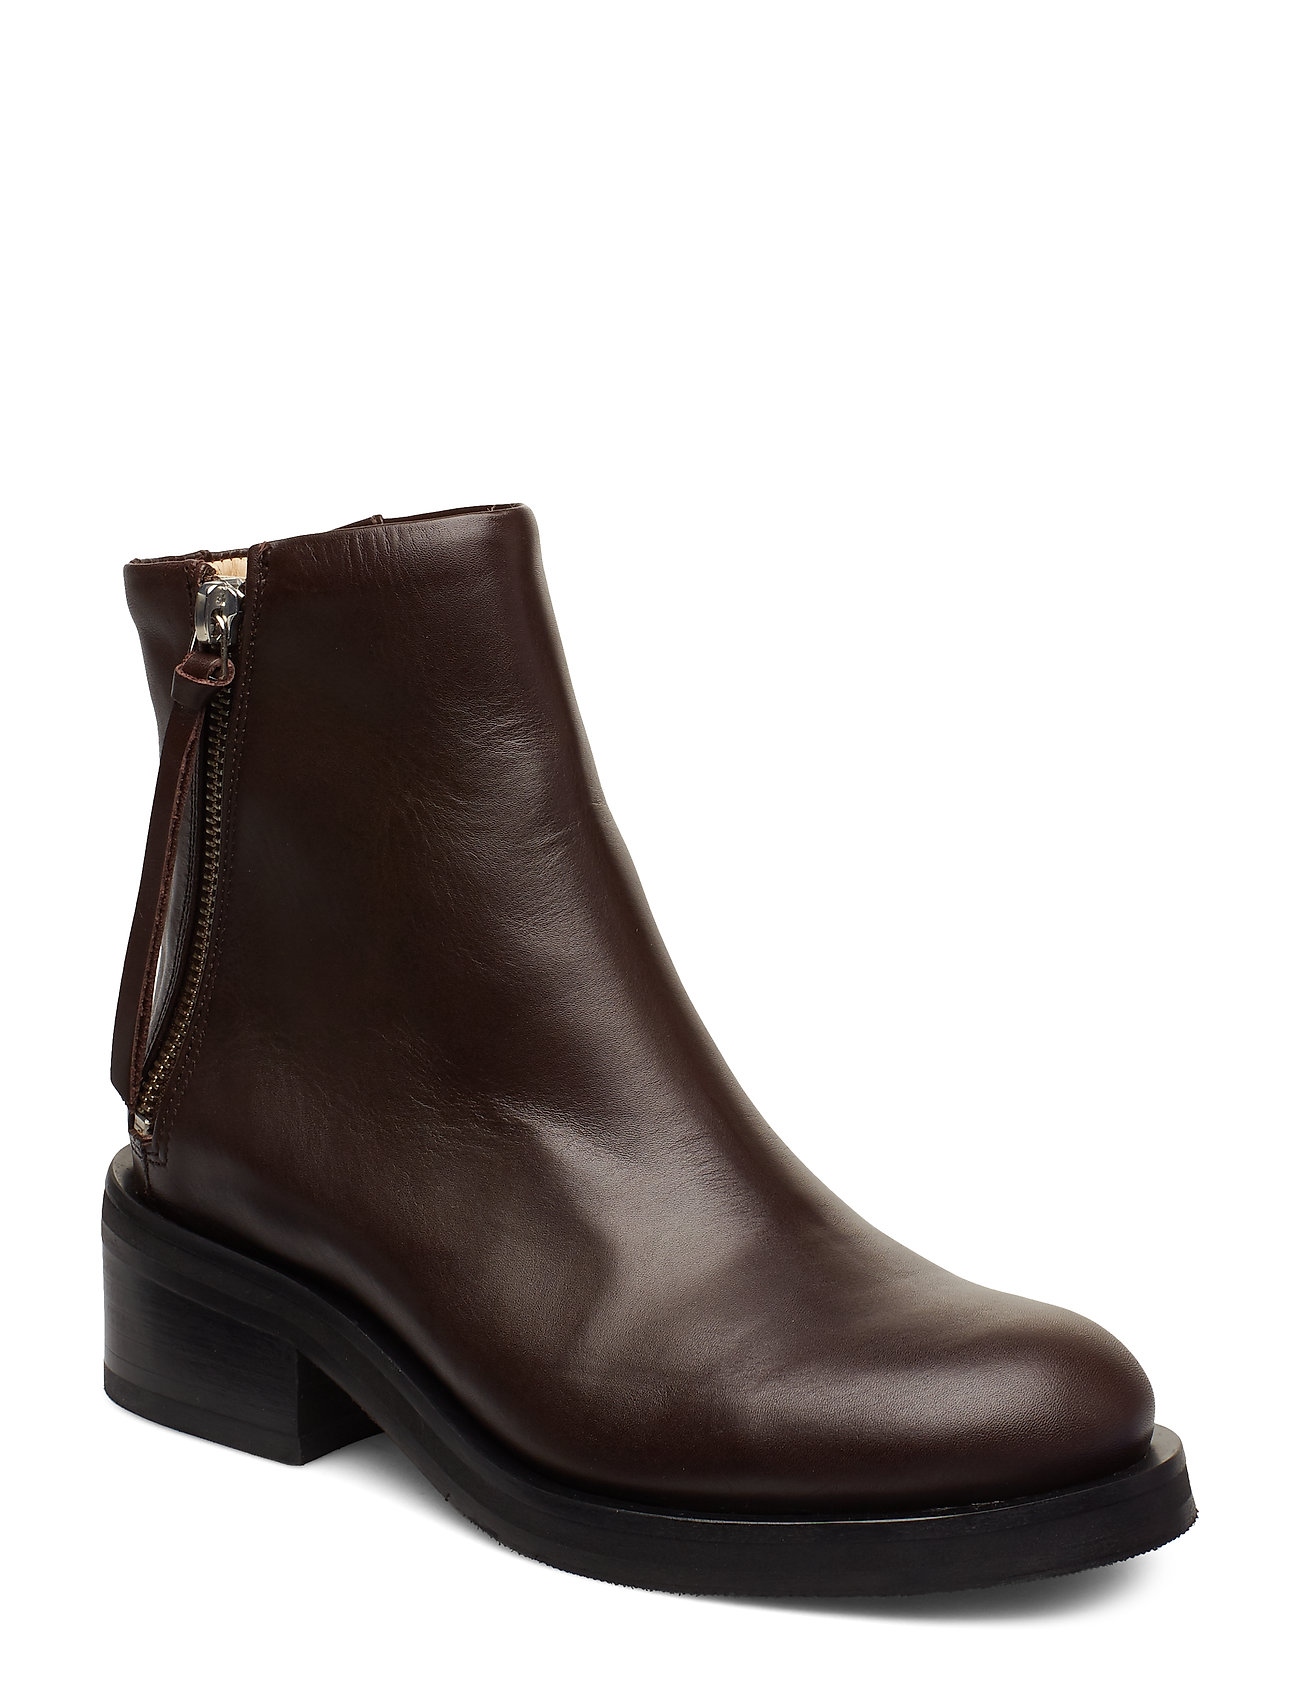 Image of District Ankle Boot Shoes Boots Ankle Boots Ankle Boot - Heel Brun Royal RepubliQ (3406180687)